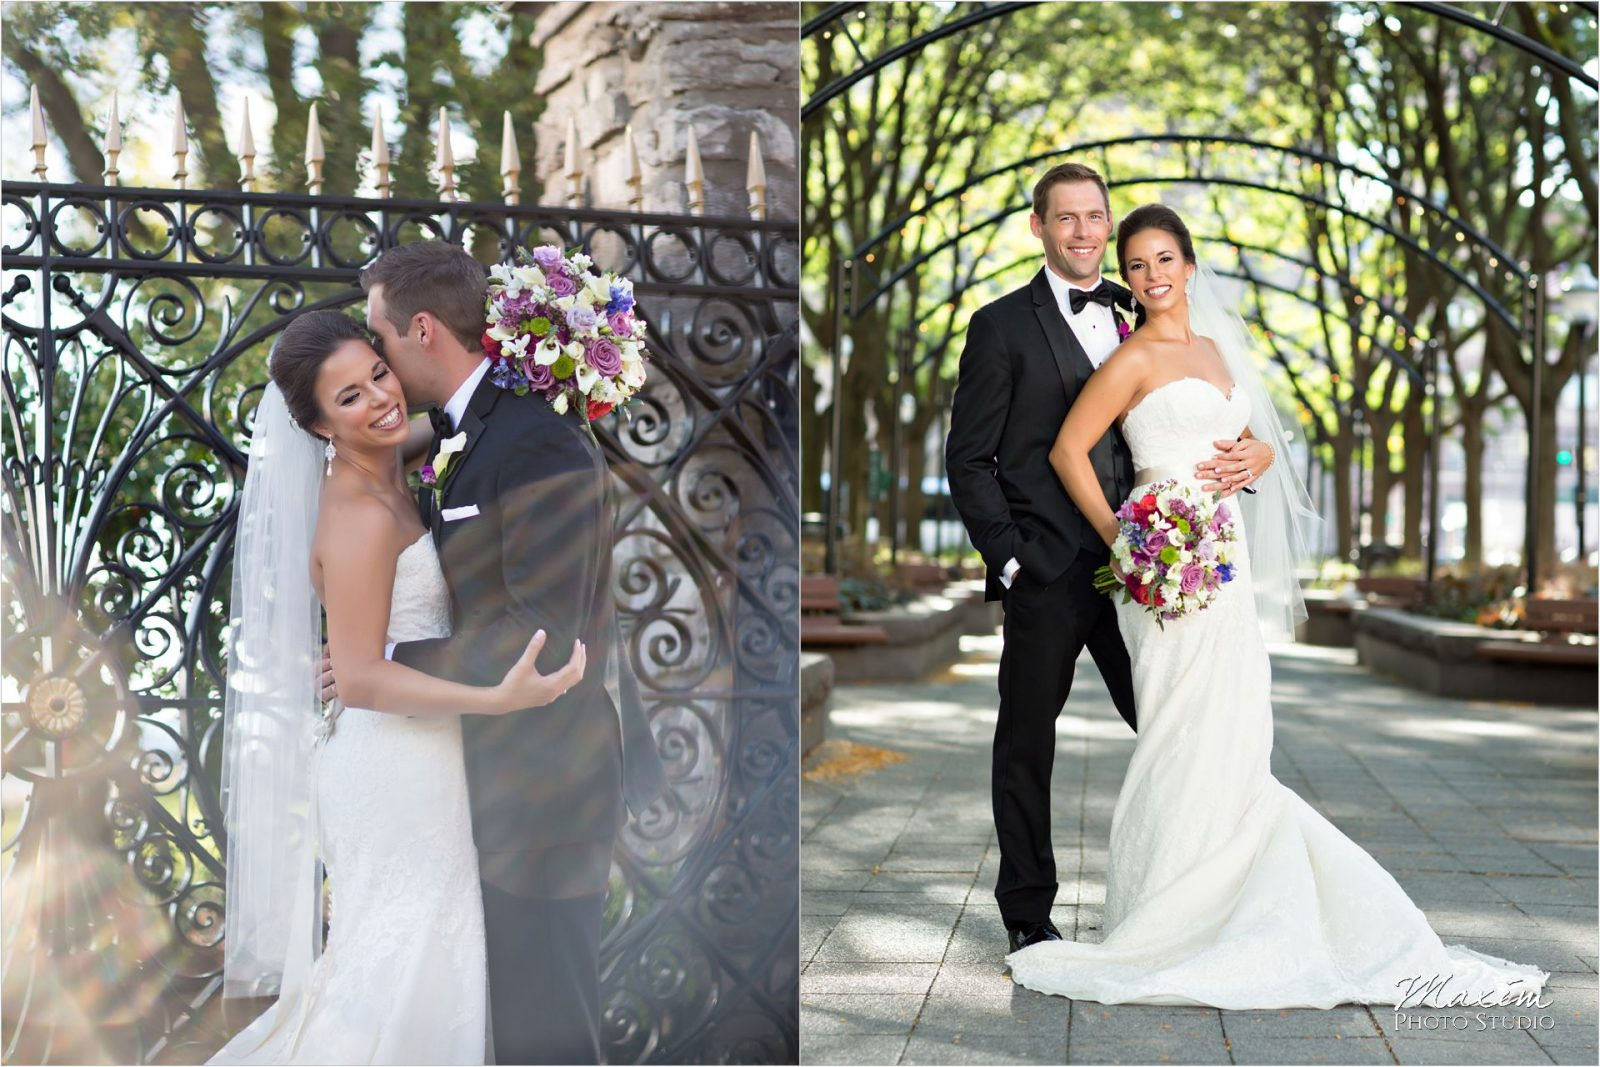 Piatt Park Cincinnati Wedding pictures